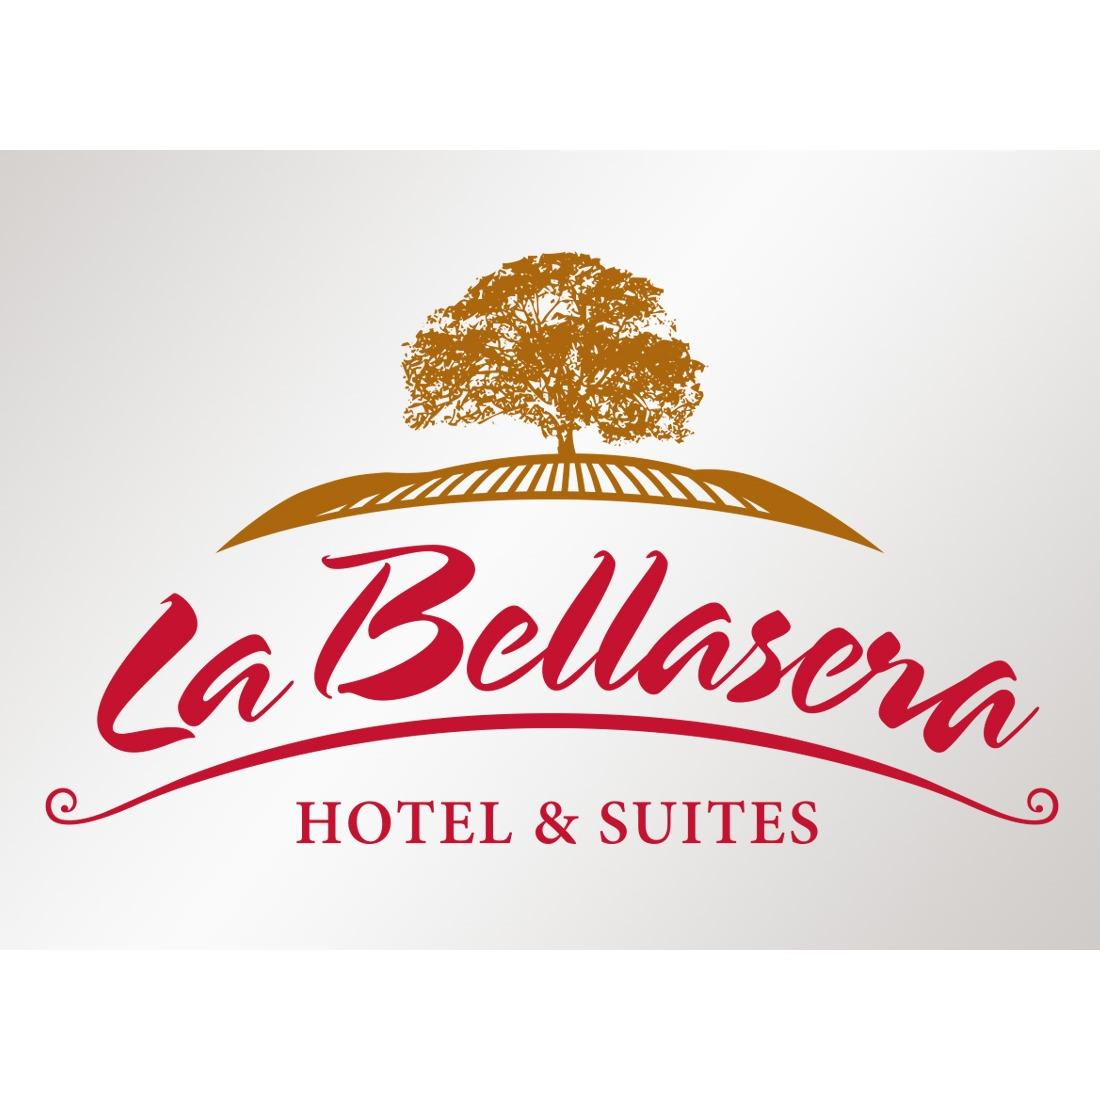 La Bellasera Hotel & Suites - Paso Robles, CA - Hotels & Motels